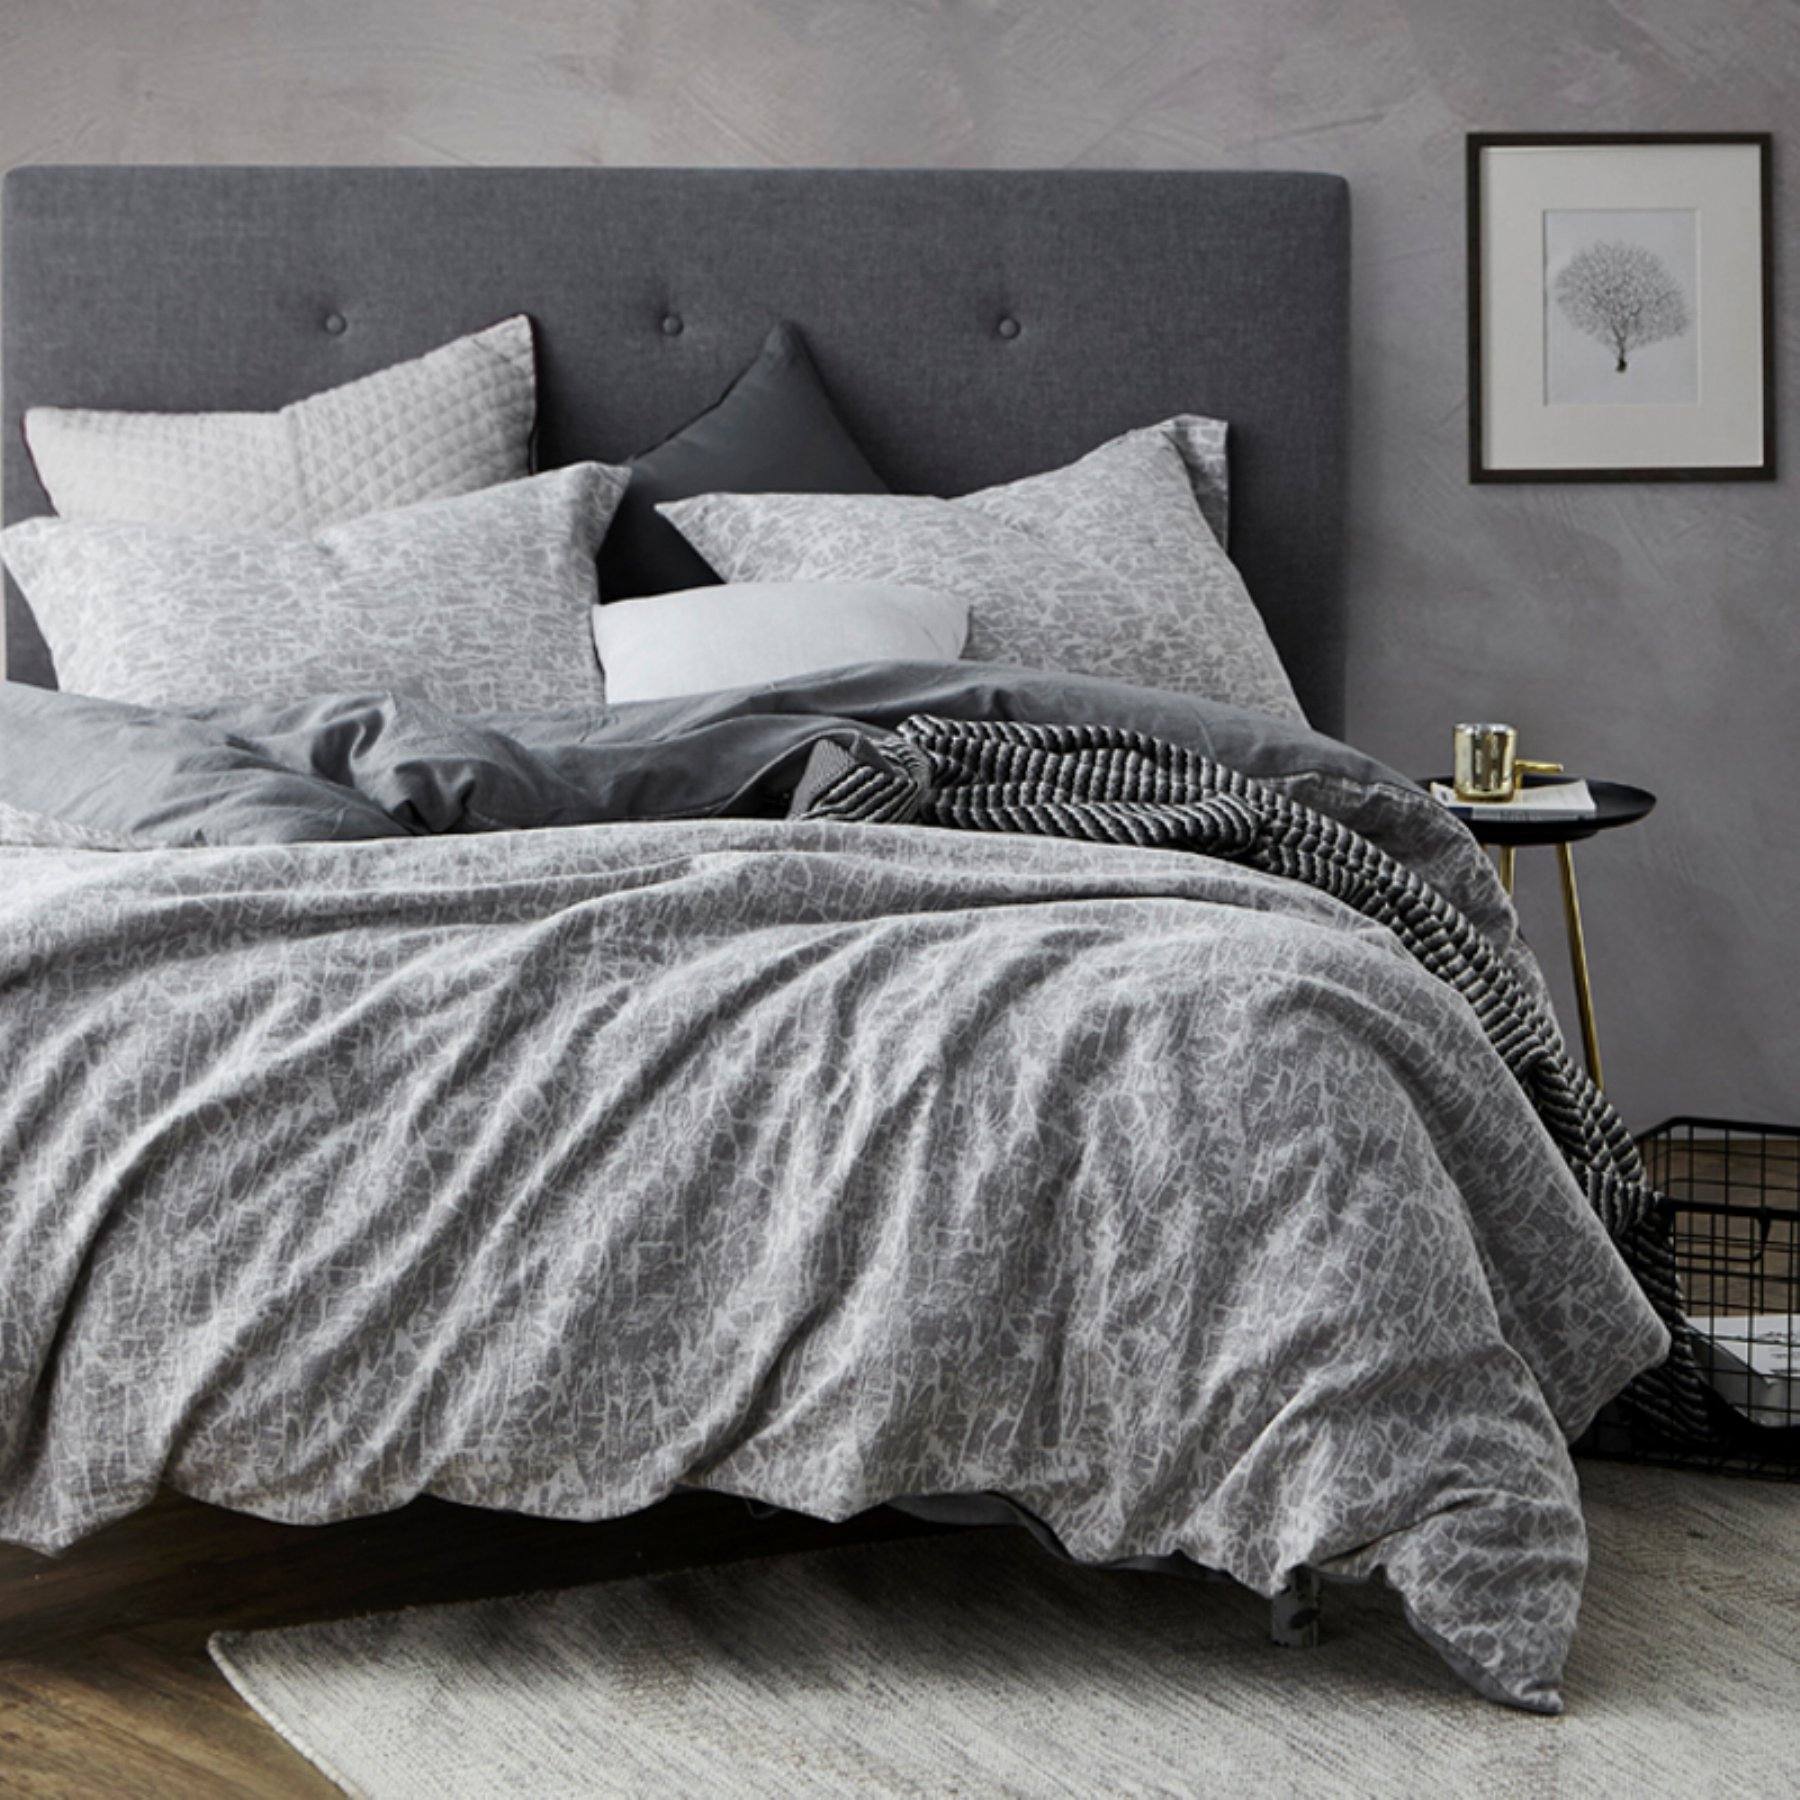 Cracked Earth Duvet Set By Byourbed  104Duvt Byb Txl